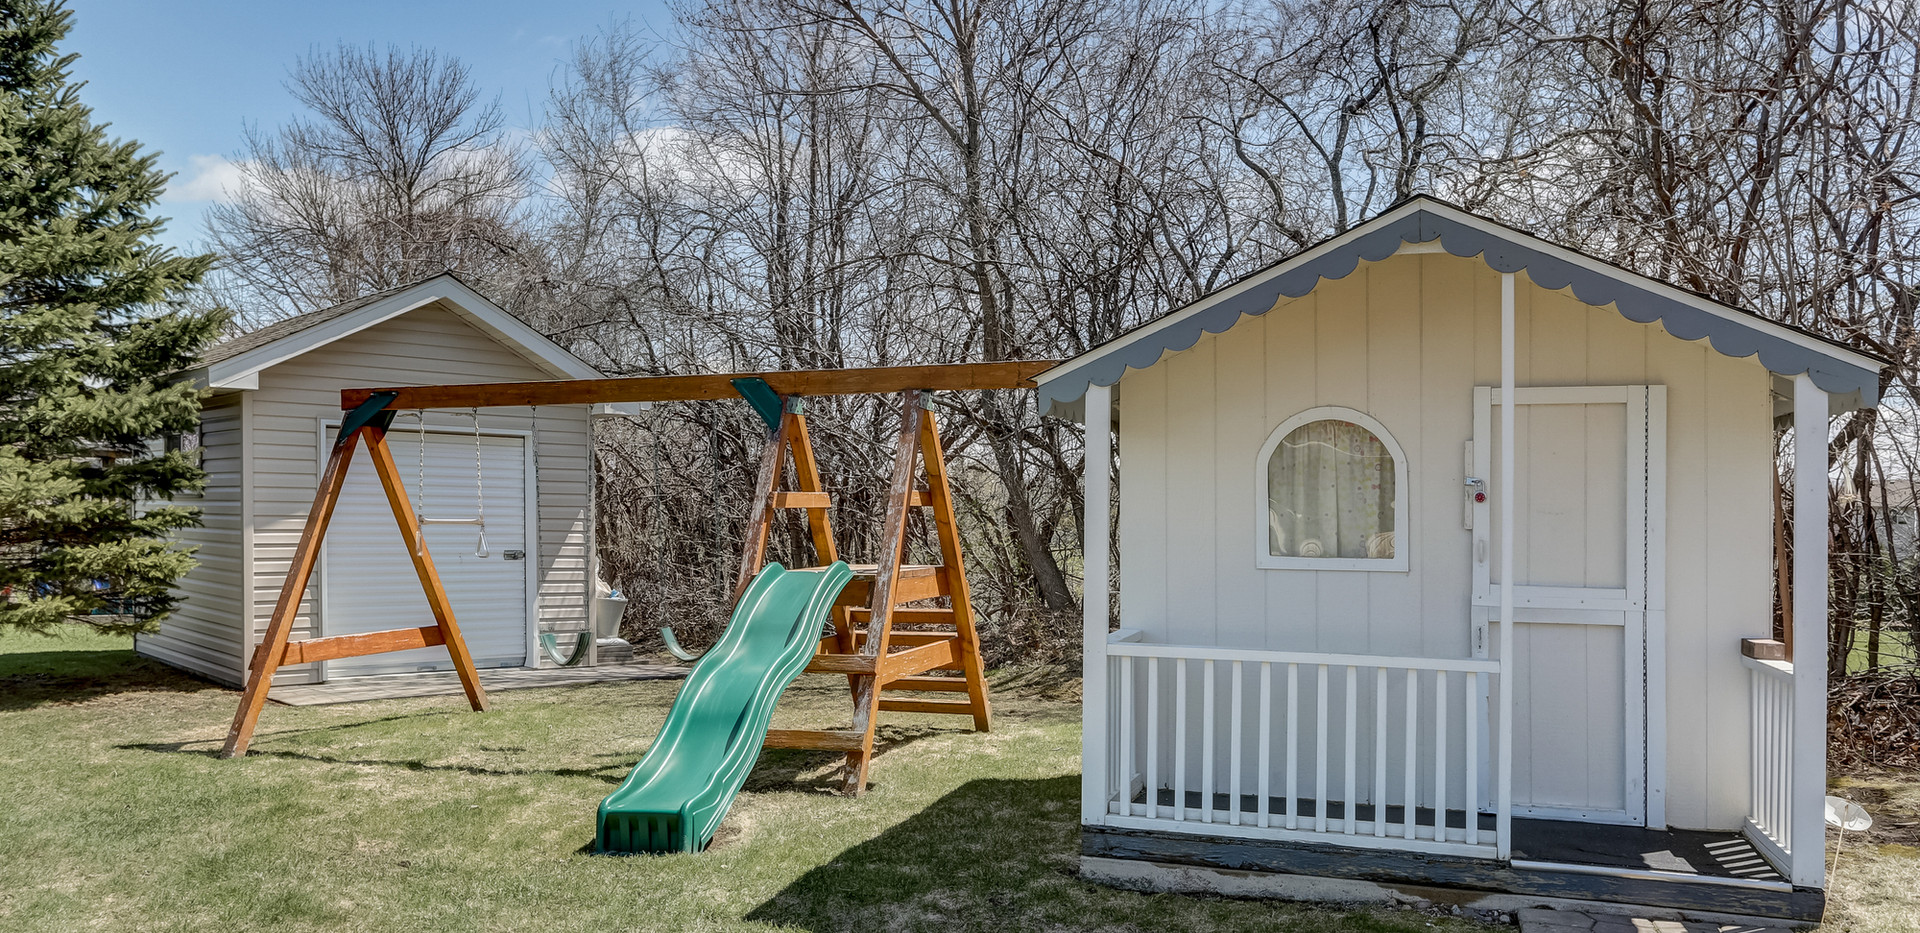 Shed & Play House